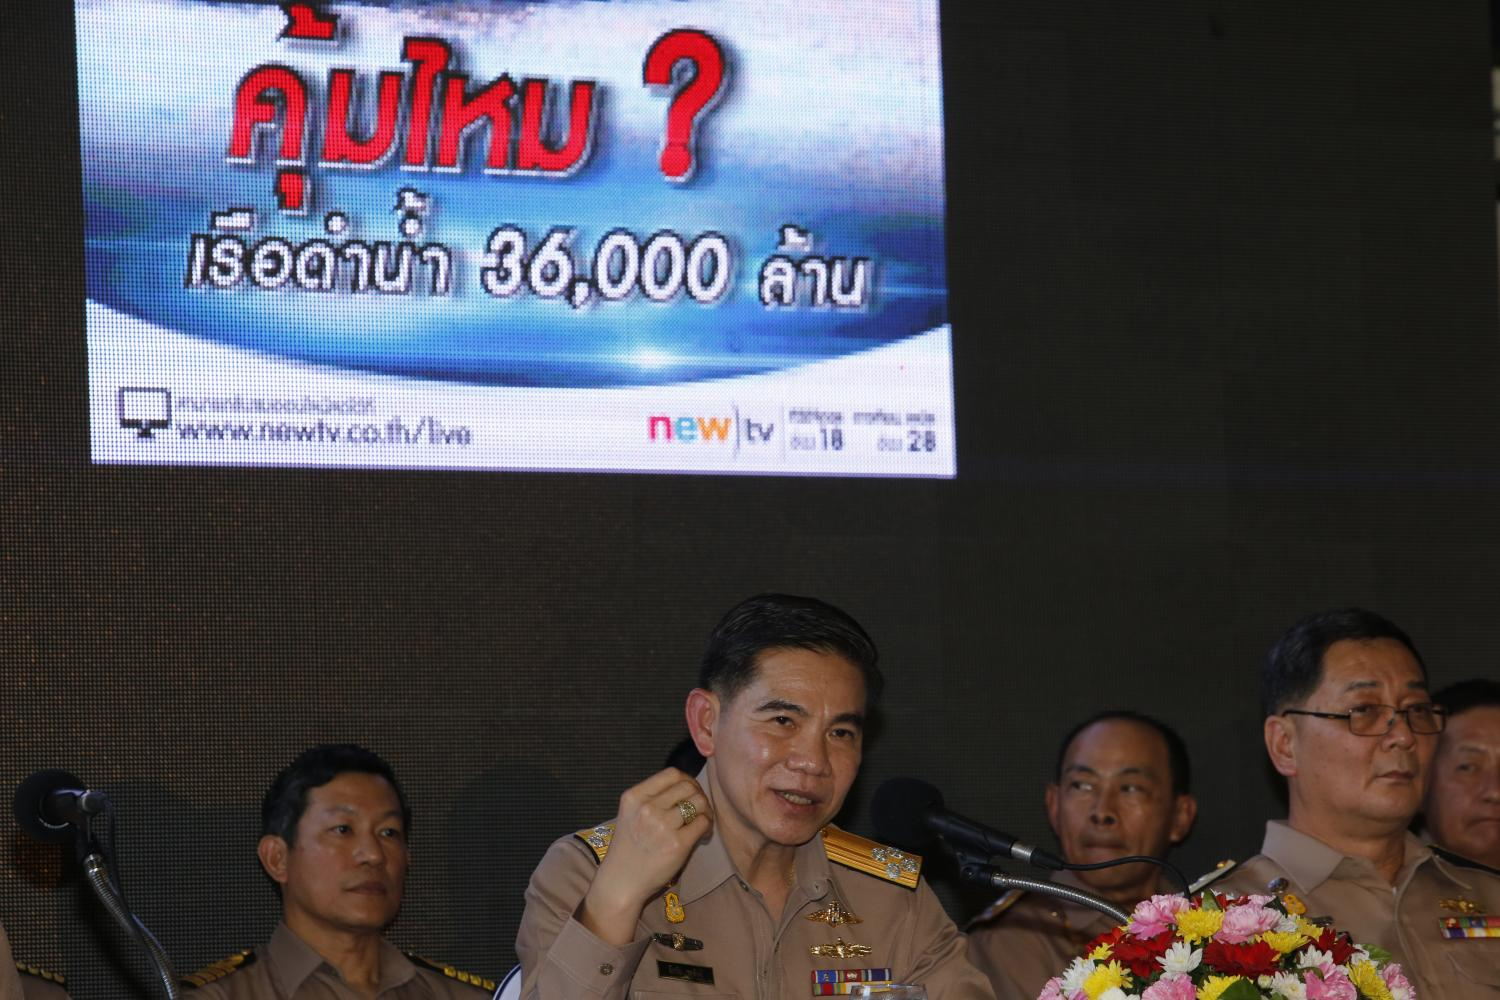 In this 2017 file photo, Adm Luechai Ruddit, then Navy chief of staff, middle, chairman of the navy's submarine procurement management panel, addresses a press conference to defend the controversial submarine purchase.Bangkok Post